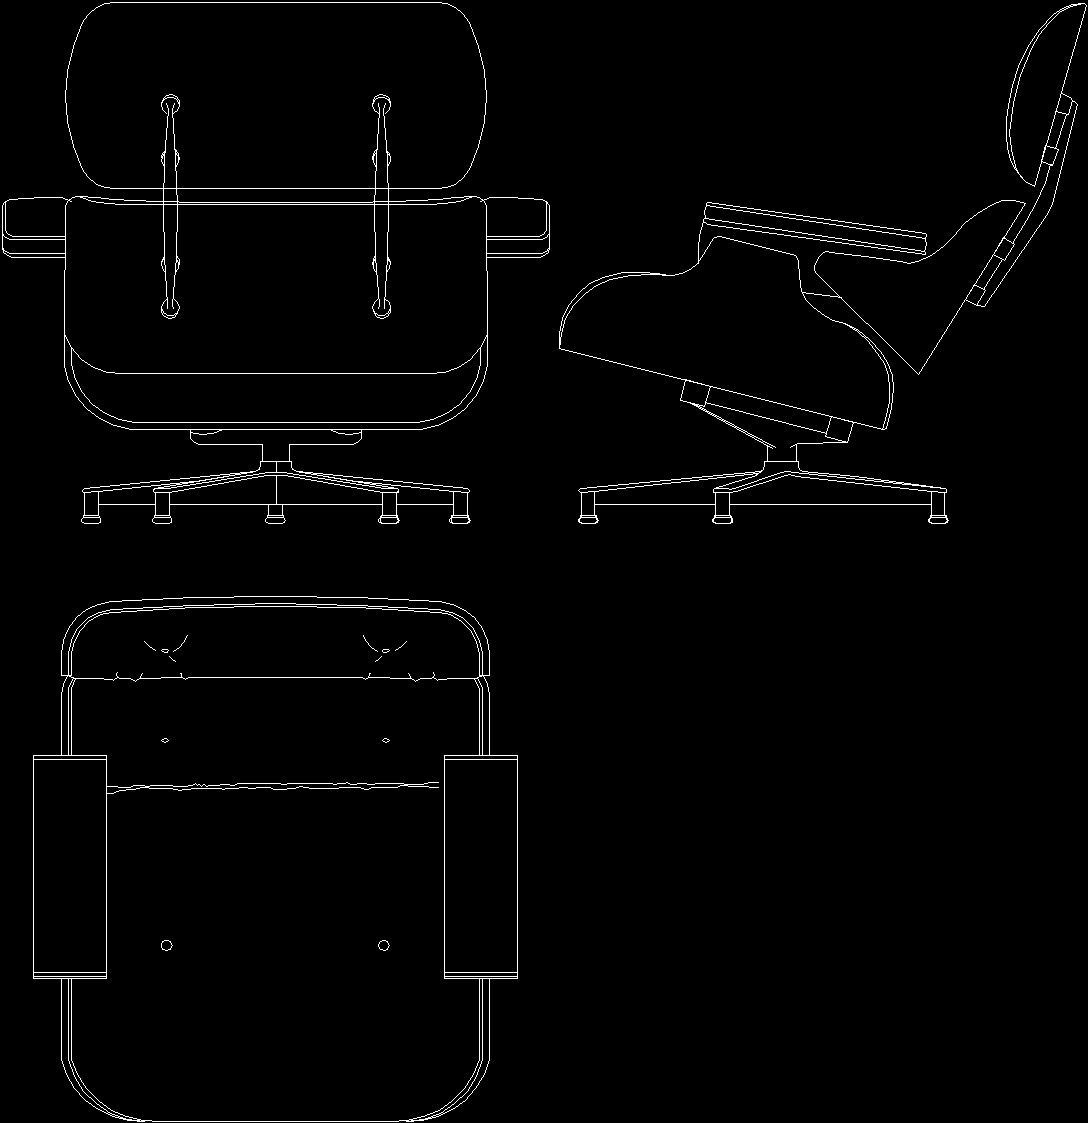 Lounge Sessel Dwg Charles Eames Lounge Chair 1956 Dwg Block For Autocad